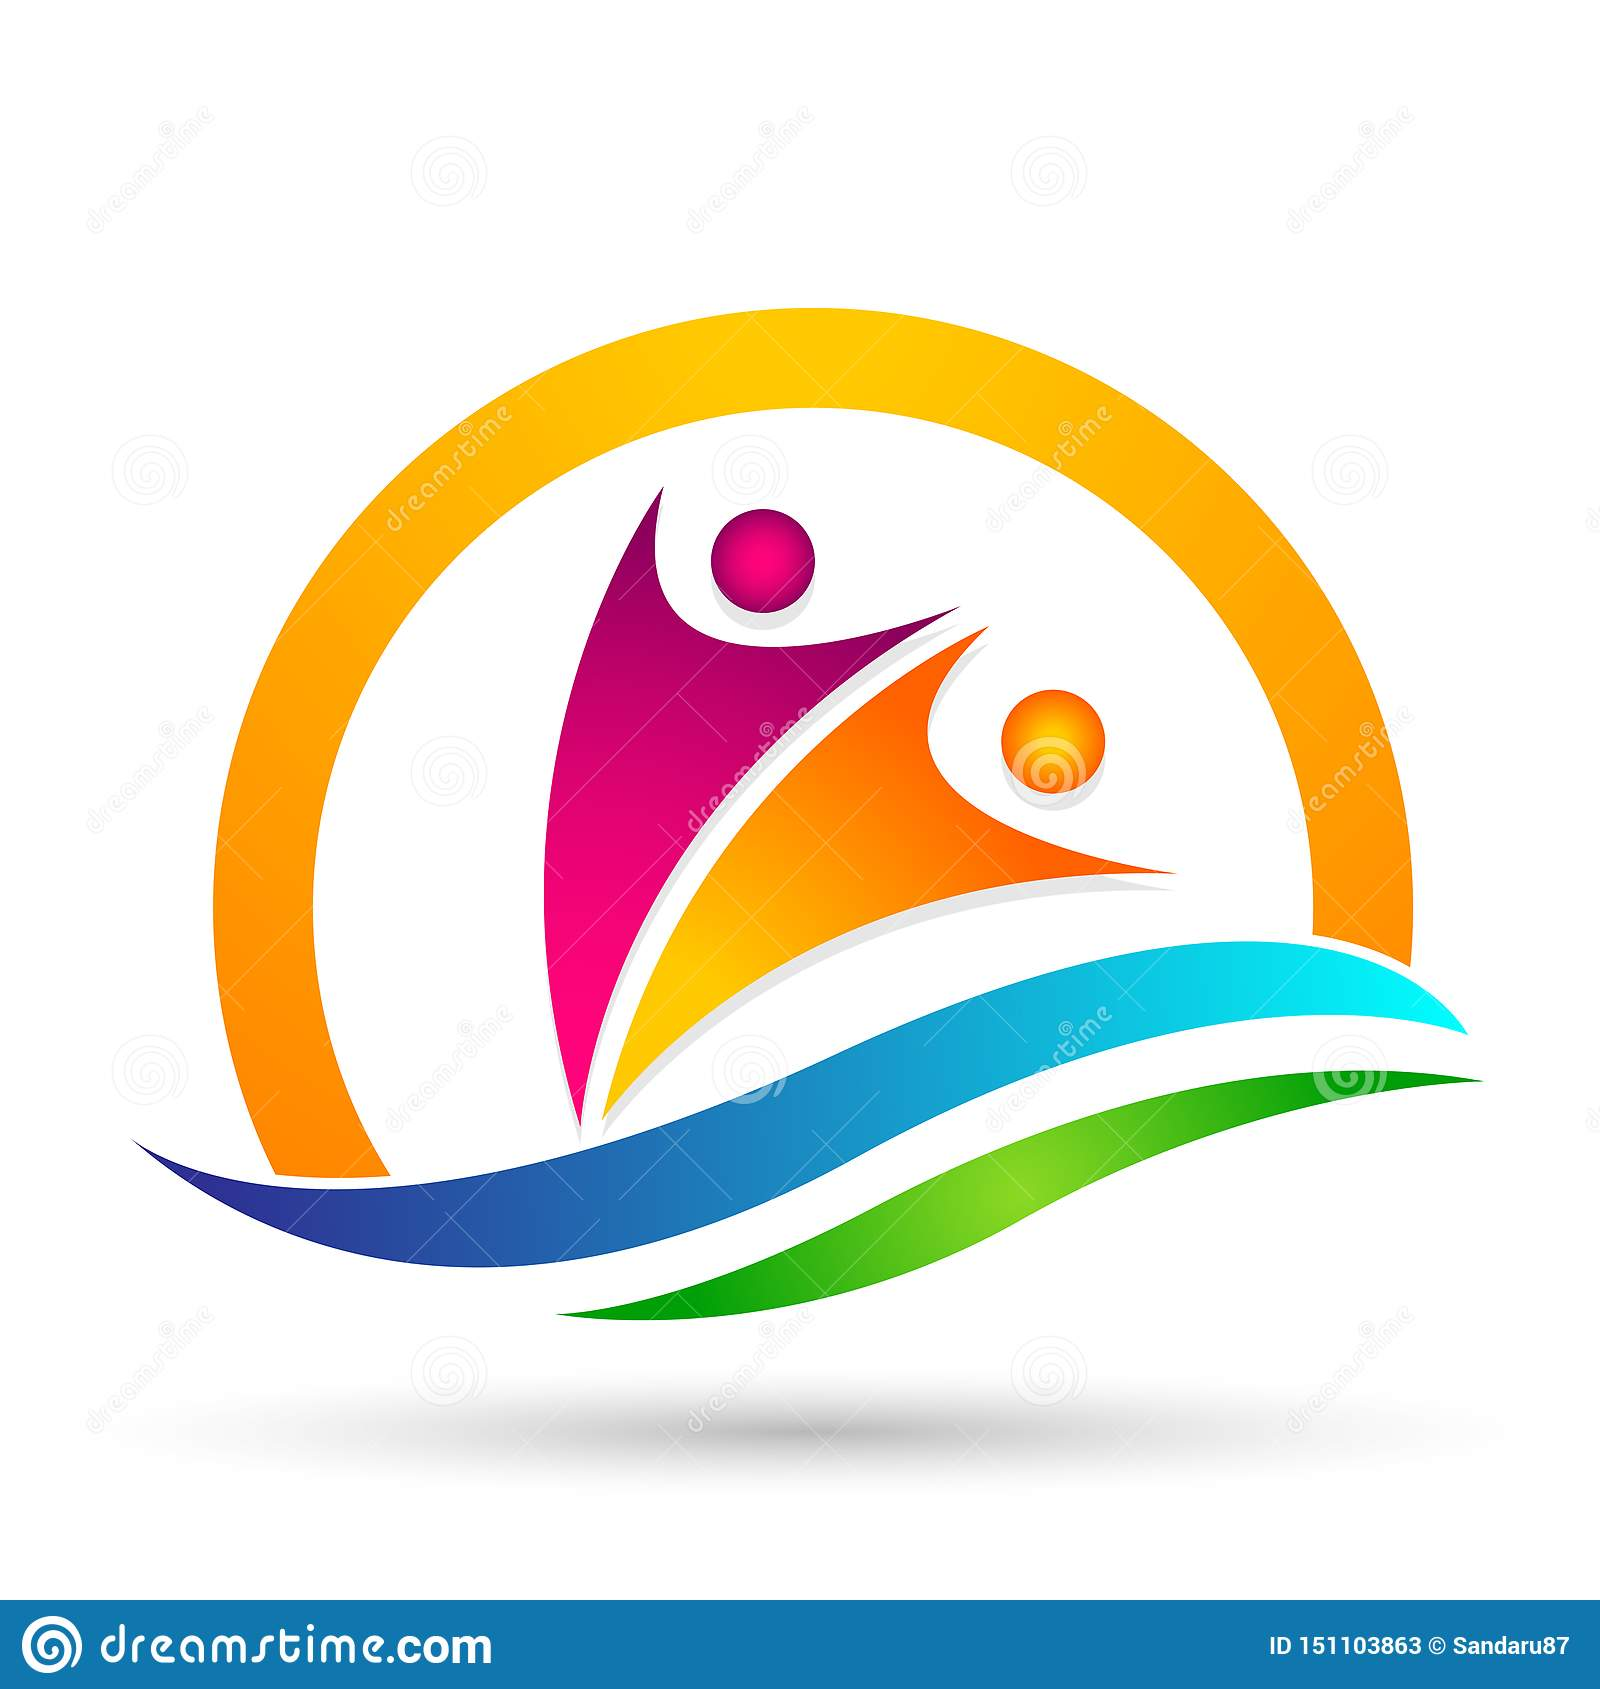 People sun sea wave water wave winning swimming logo team work celebration wellness icon vector designs on white background